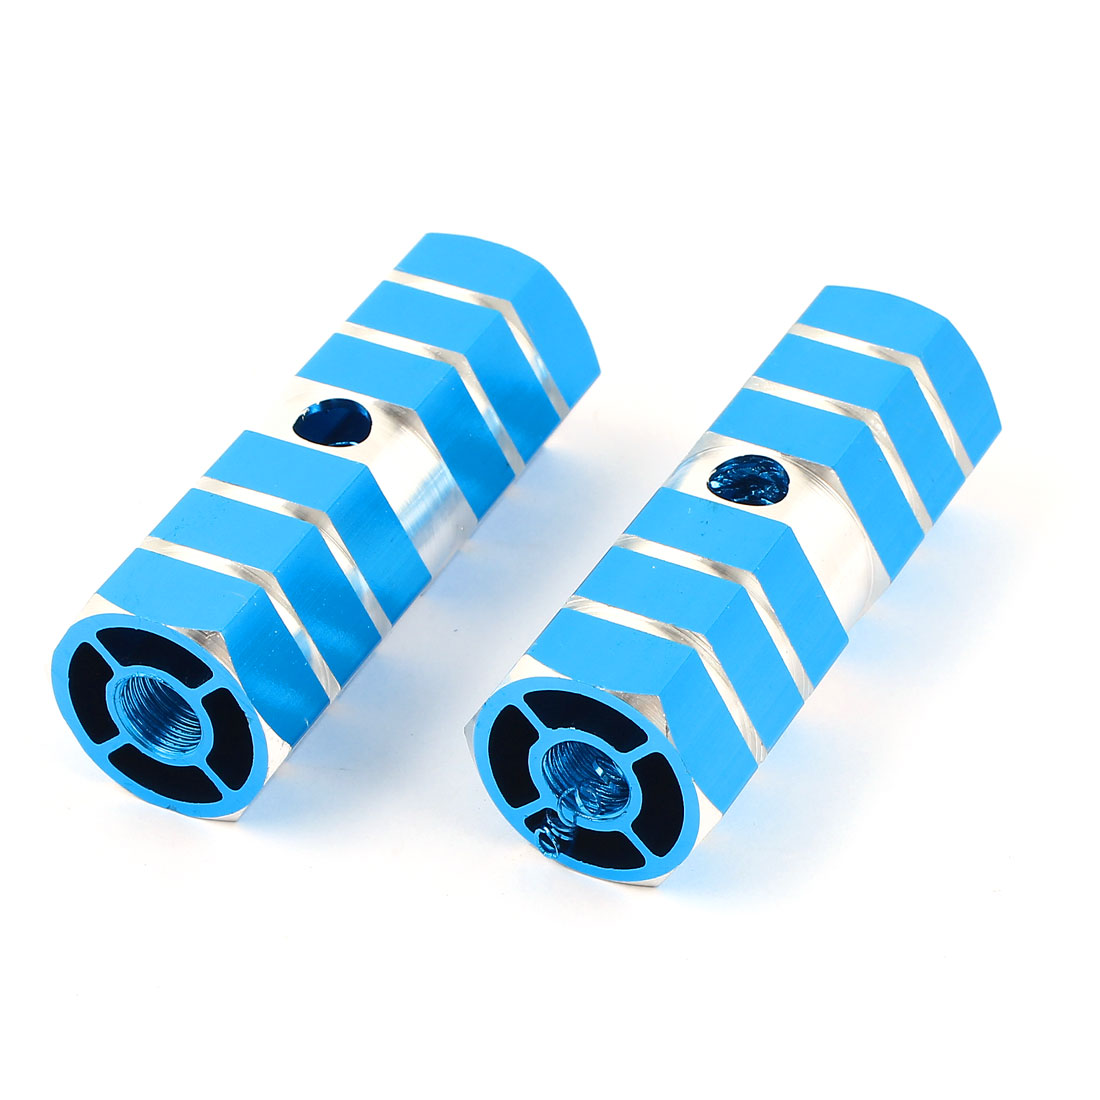 2 Pcs Mountain Bike Bicycle Part Sky Blue Aluminum Axle Foot Pegs 70x25mm